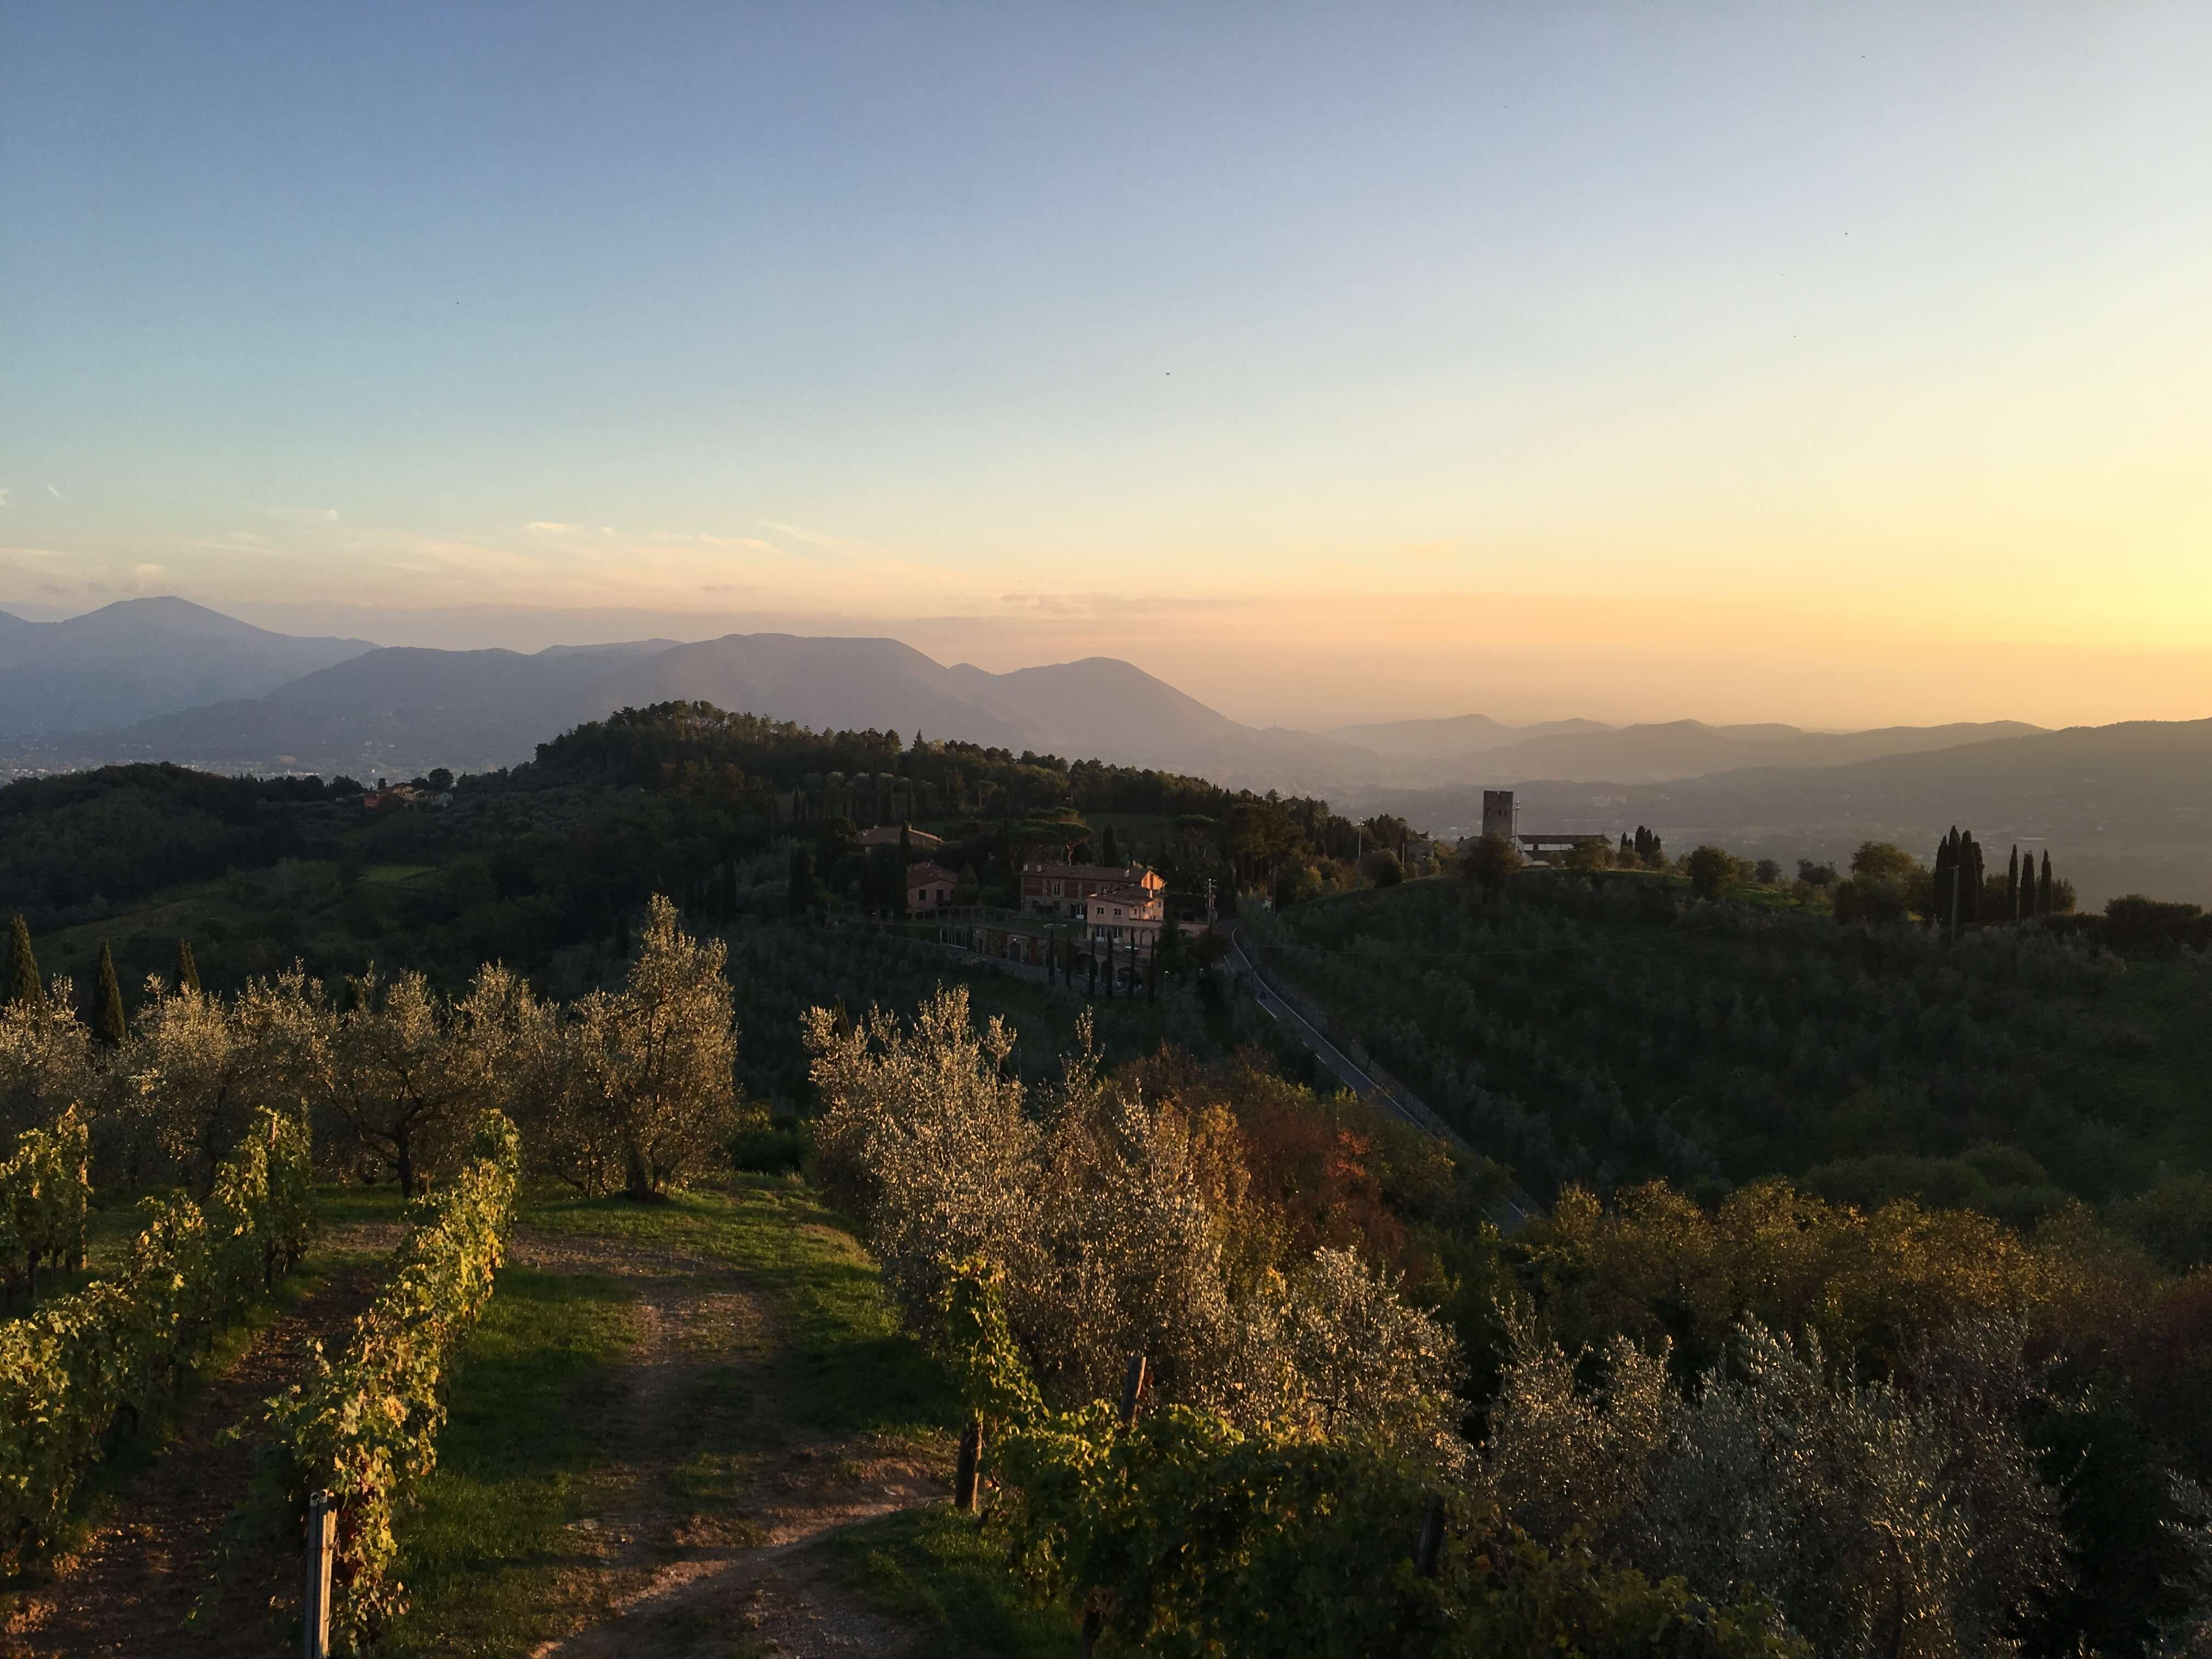 Yoga in Italy - Panorama sunset view overlooking vineyards and olive groves from our unique outdoor yoga platform